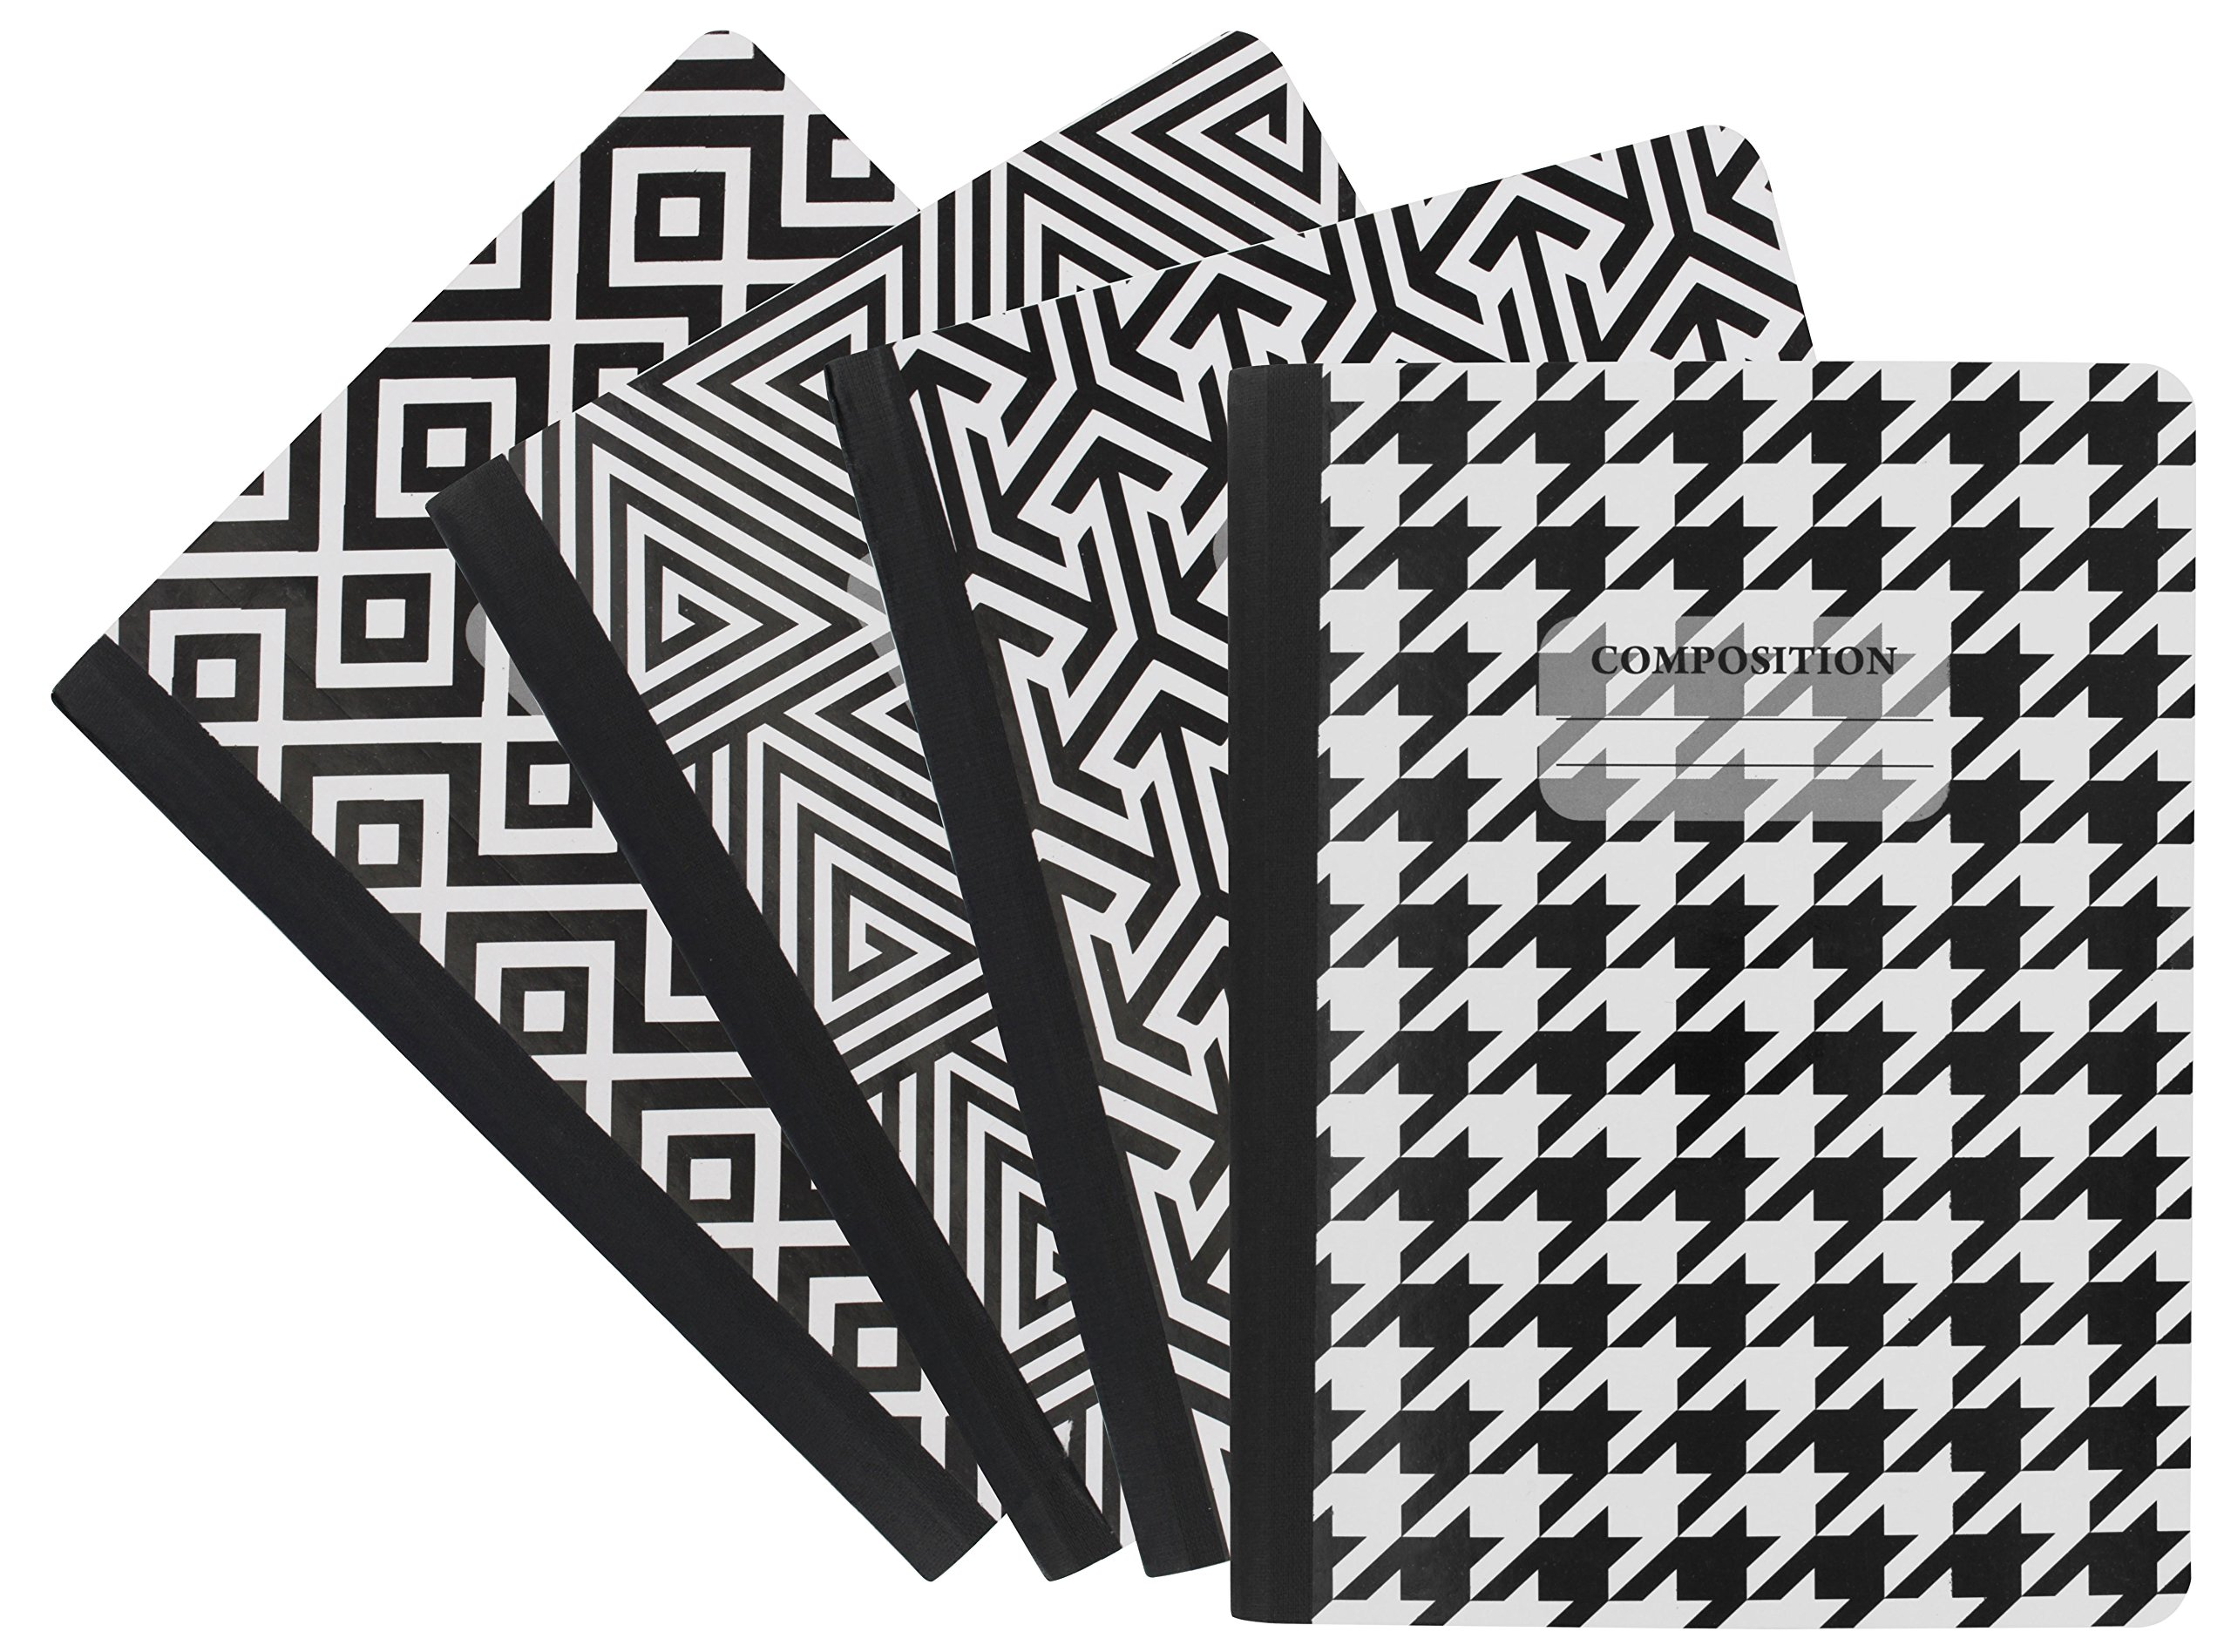 Emraw Black & White 4 Fashion Styles Cover Composition Book with 100 Sheets of Wide Ruled White Paper - Set Includes All Style Covers (4 Pack)